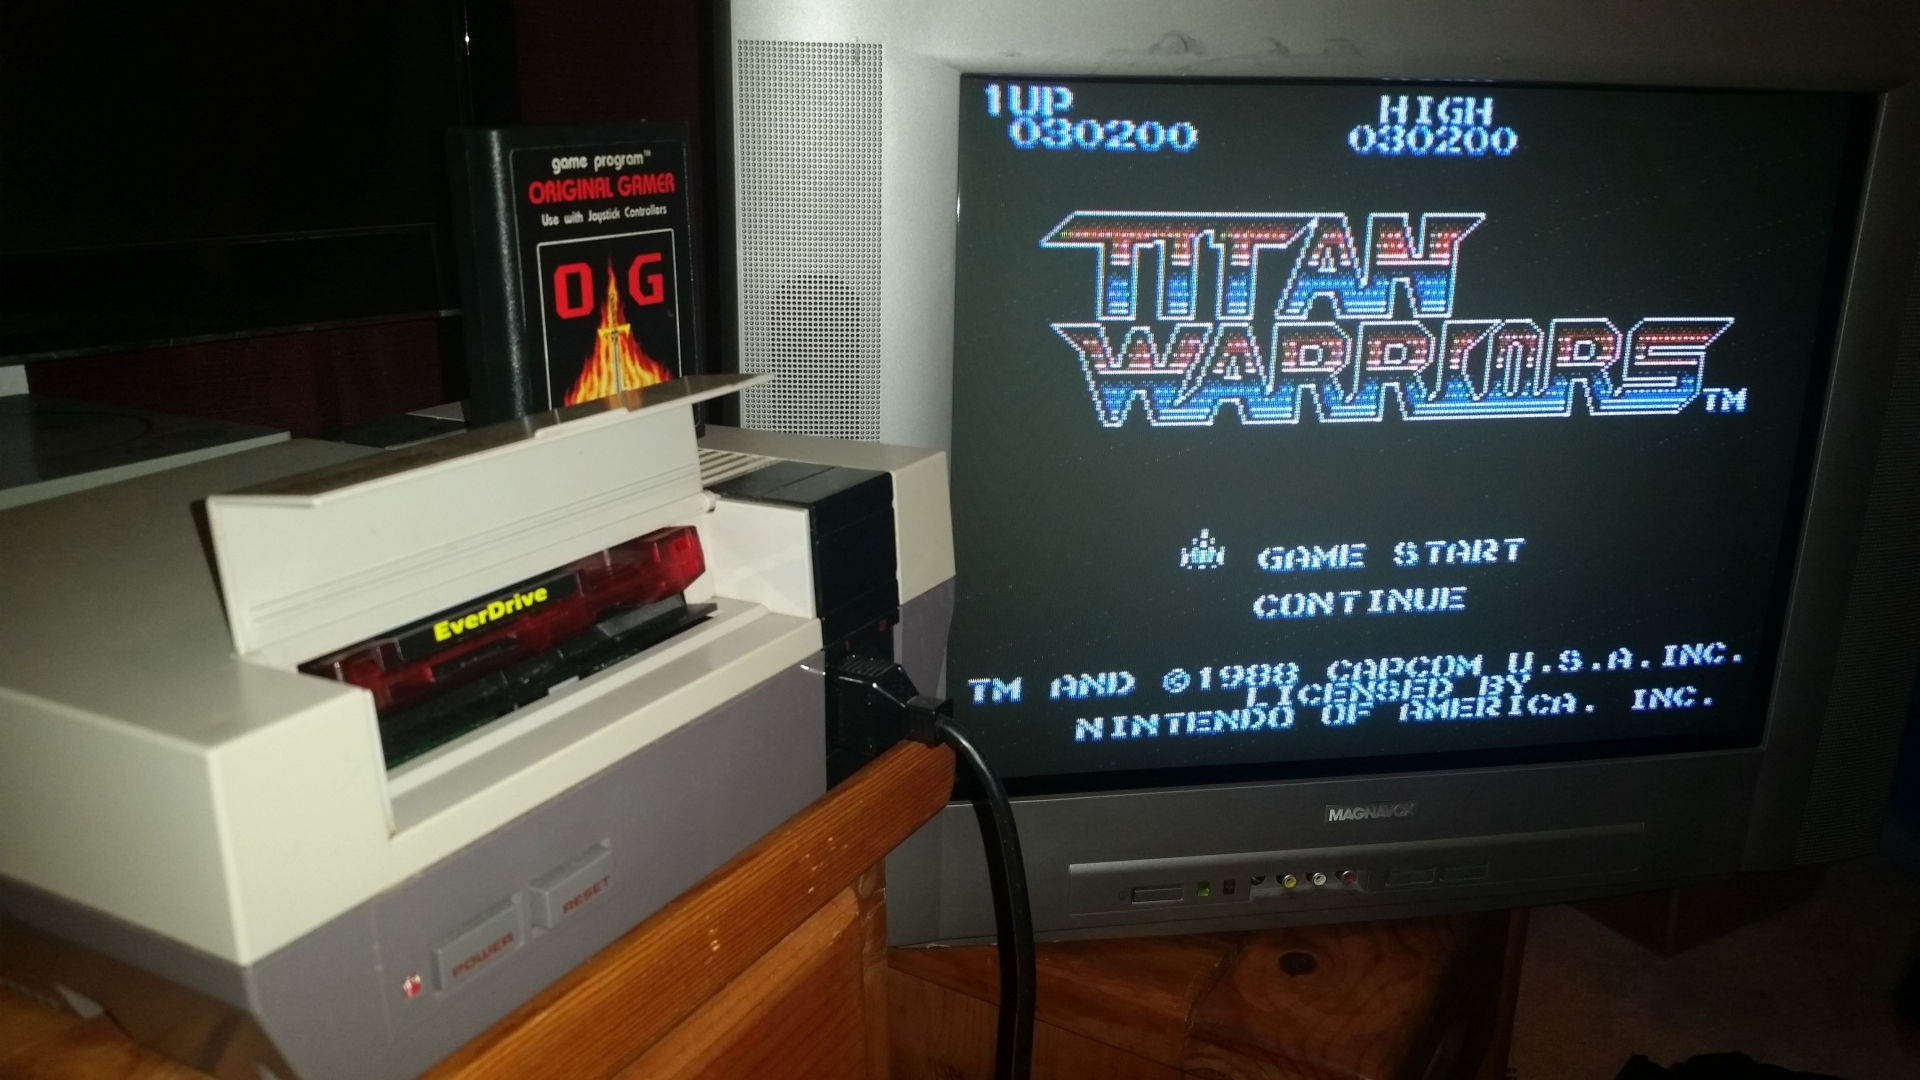 OriginalGamer: Titan Warriors (NES/Famicom) 30,200 points on 2016-09-19 01:44:06